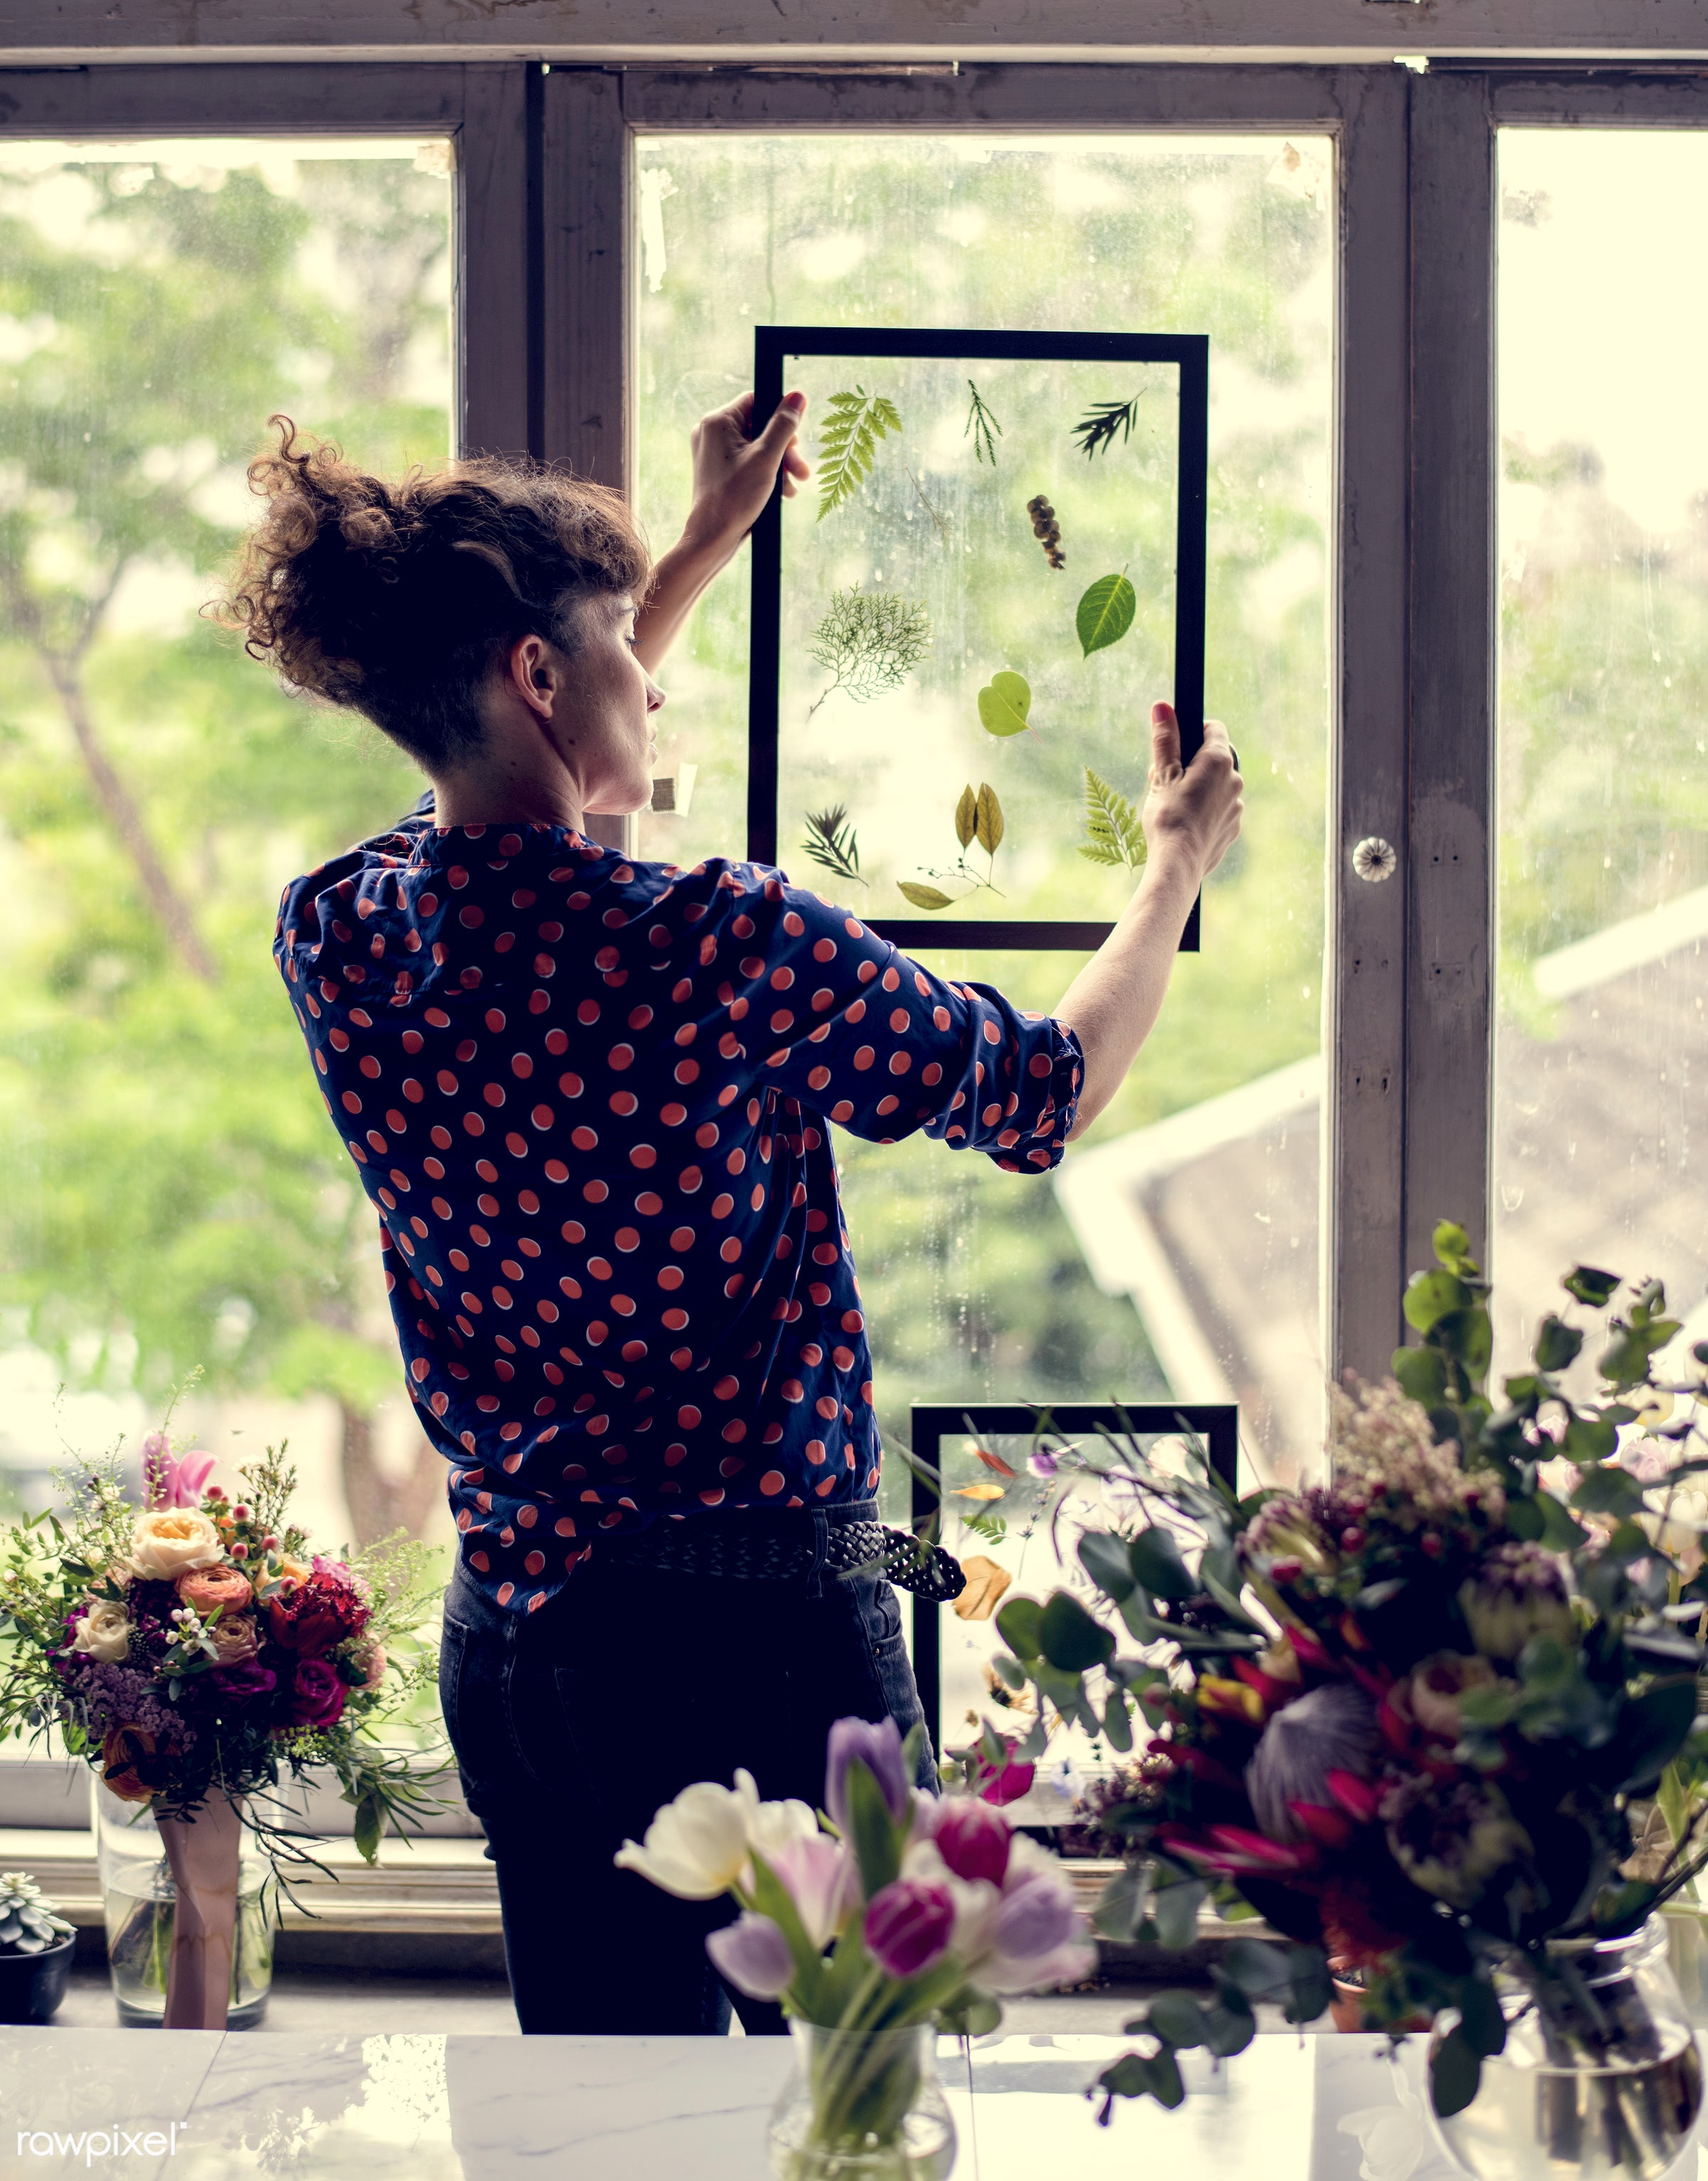 plant, shop, person, dried plant, holding, leaf, beauty, desk, people, creativity, blossom, nature, fresh, woman, pressed...